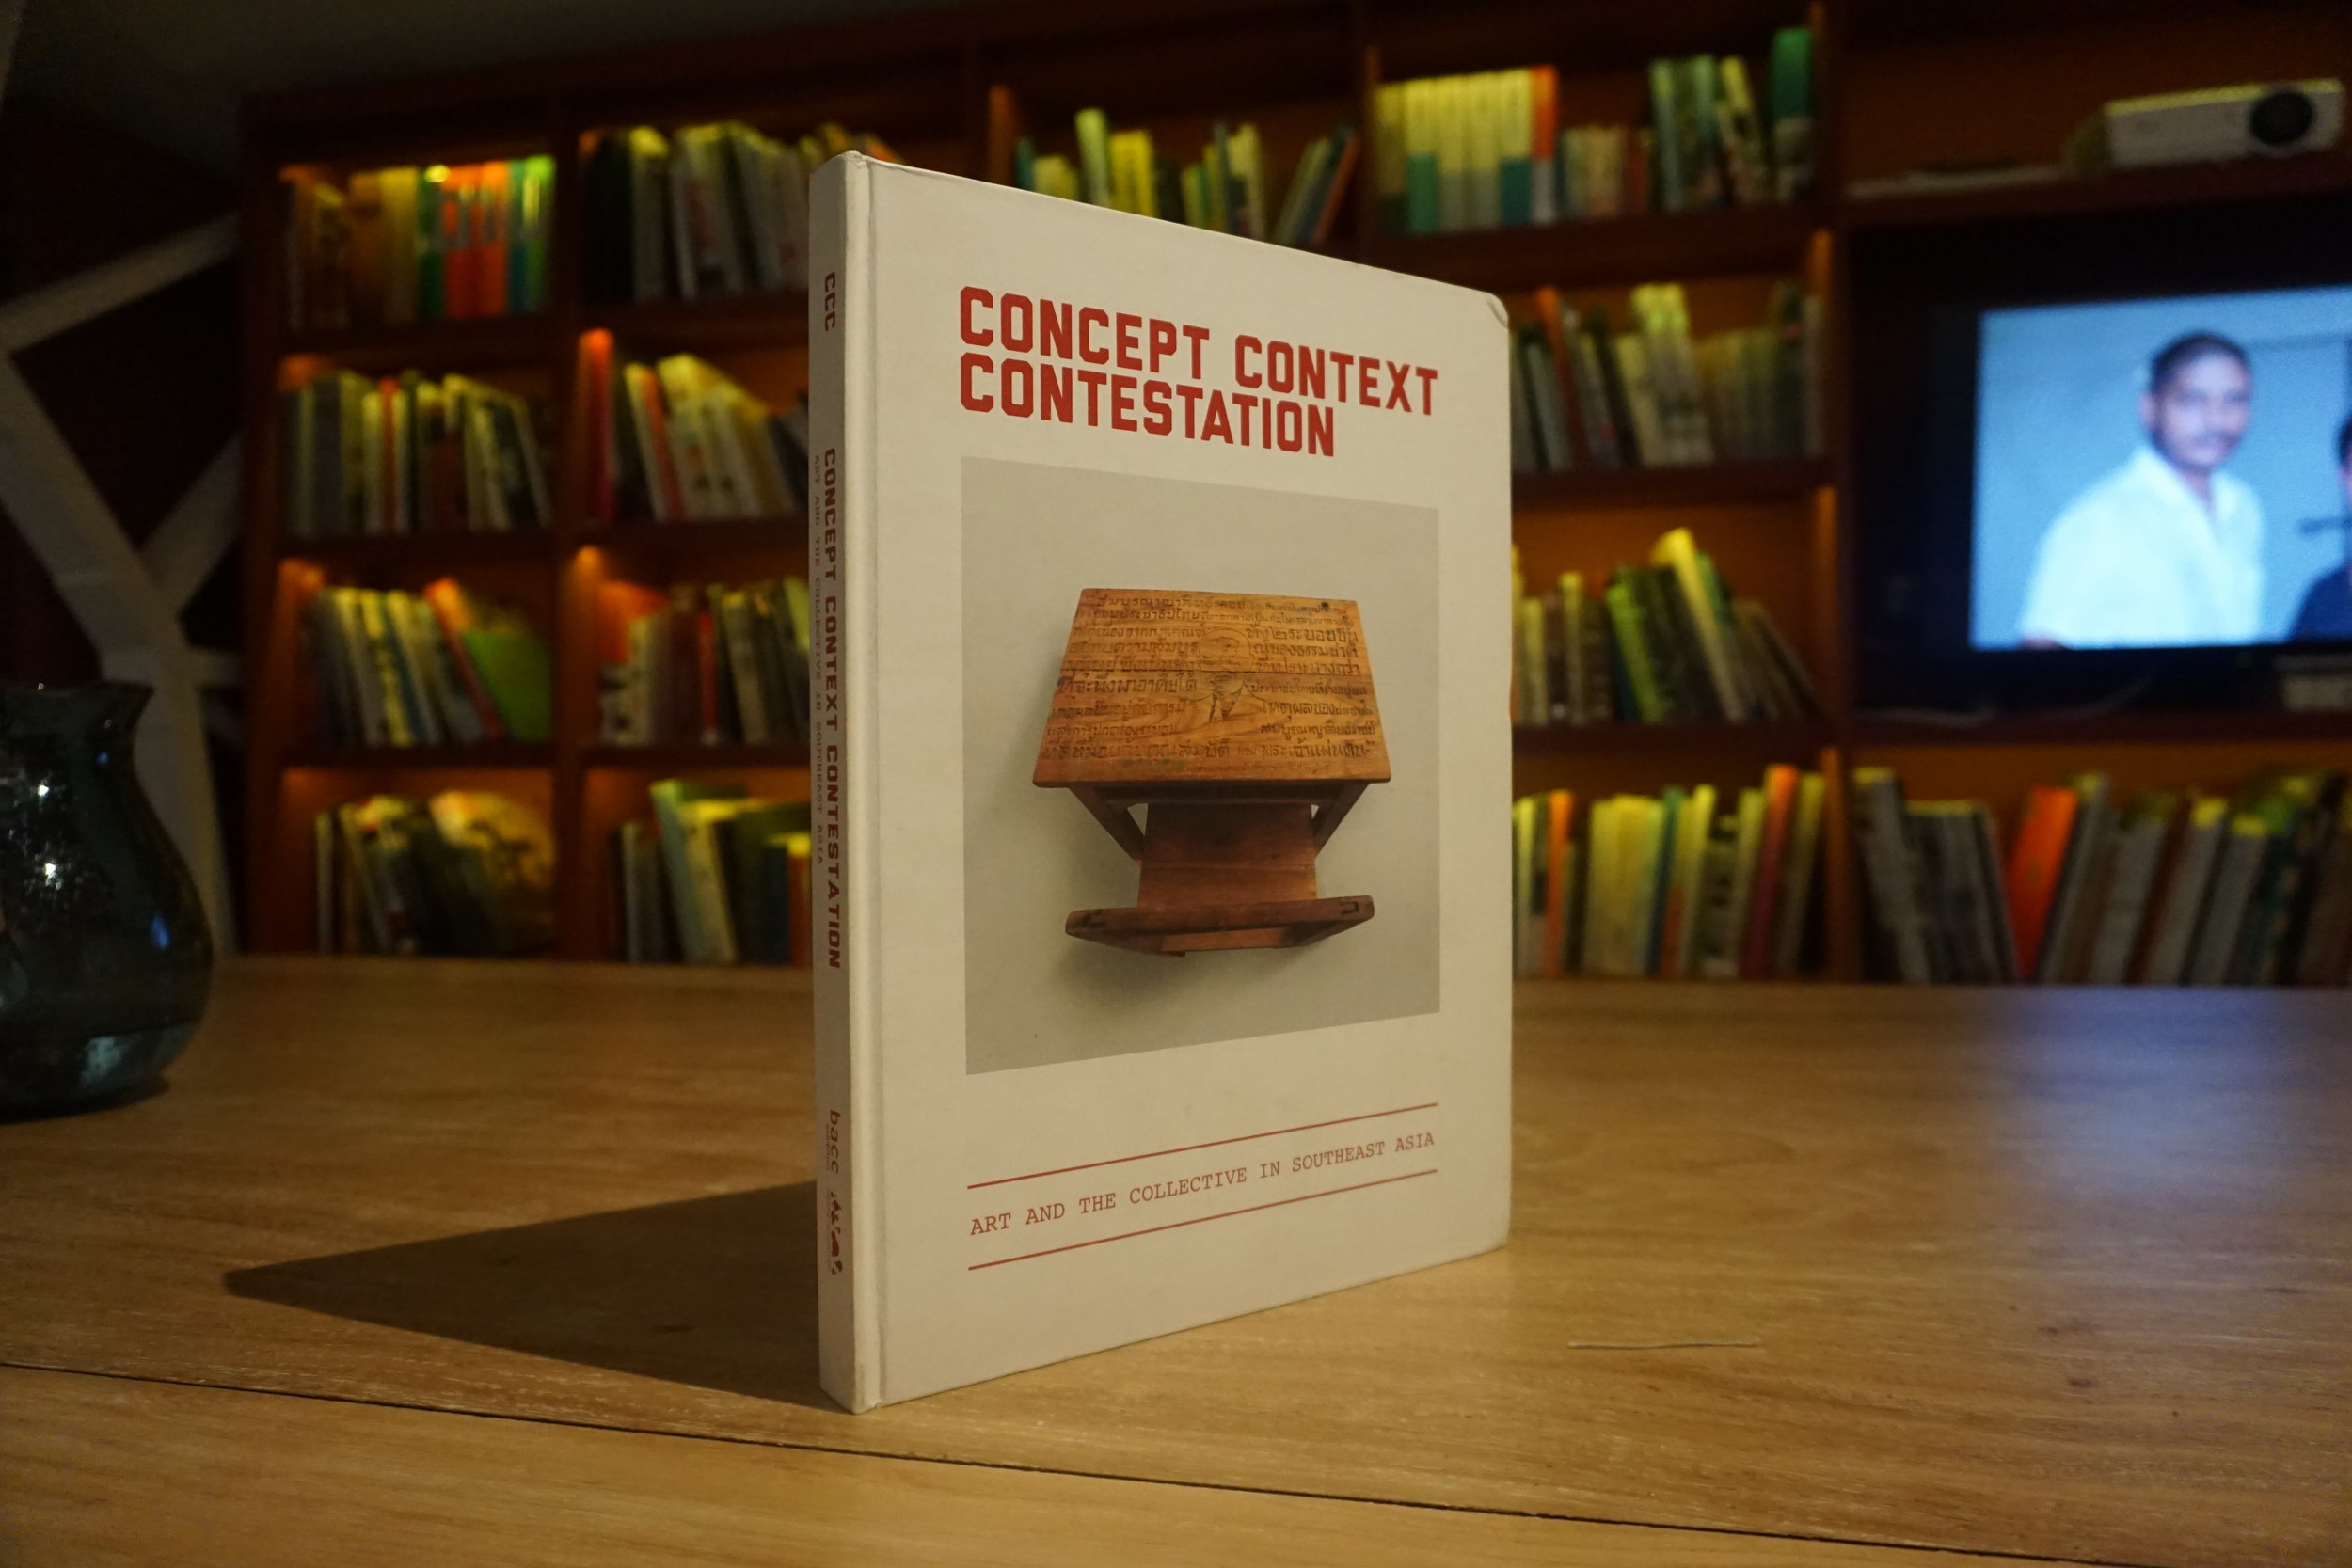 Concept Context Contestation: Art and The Collective in Southeast Asia